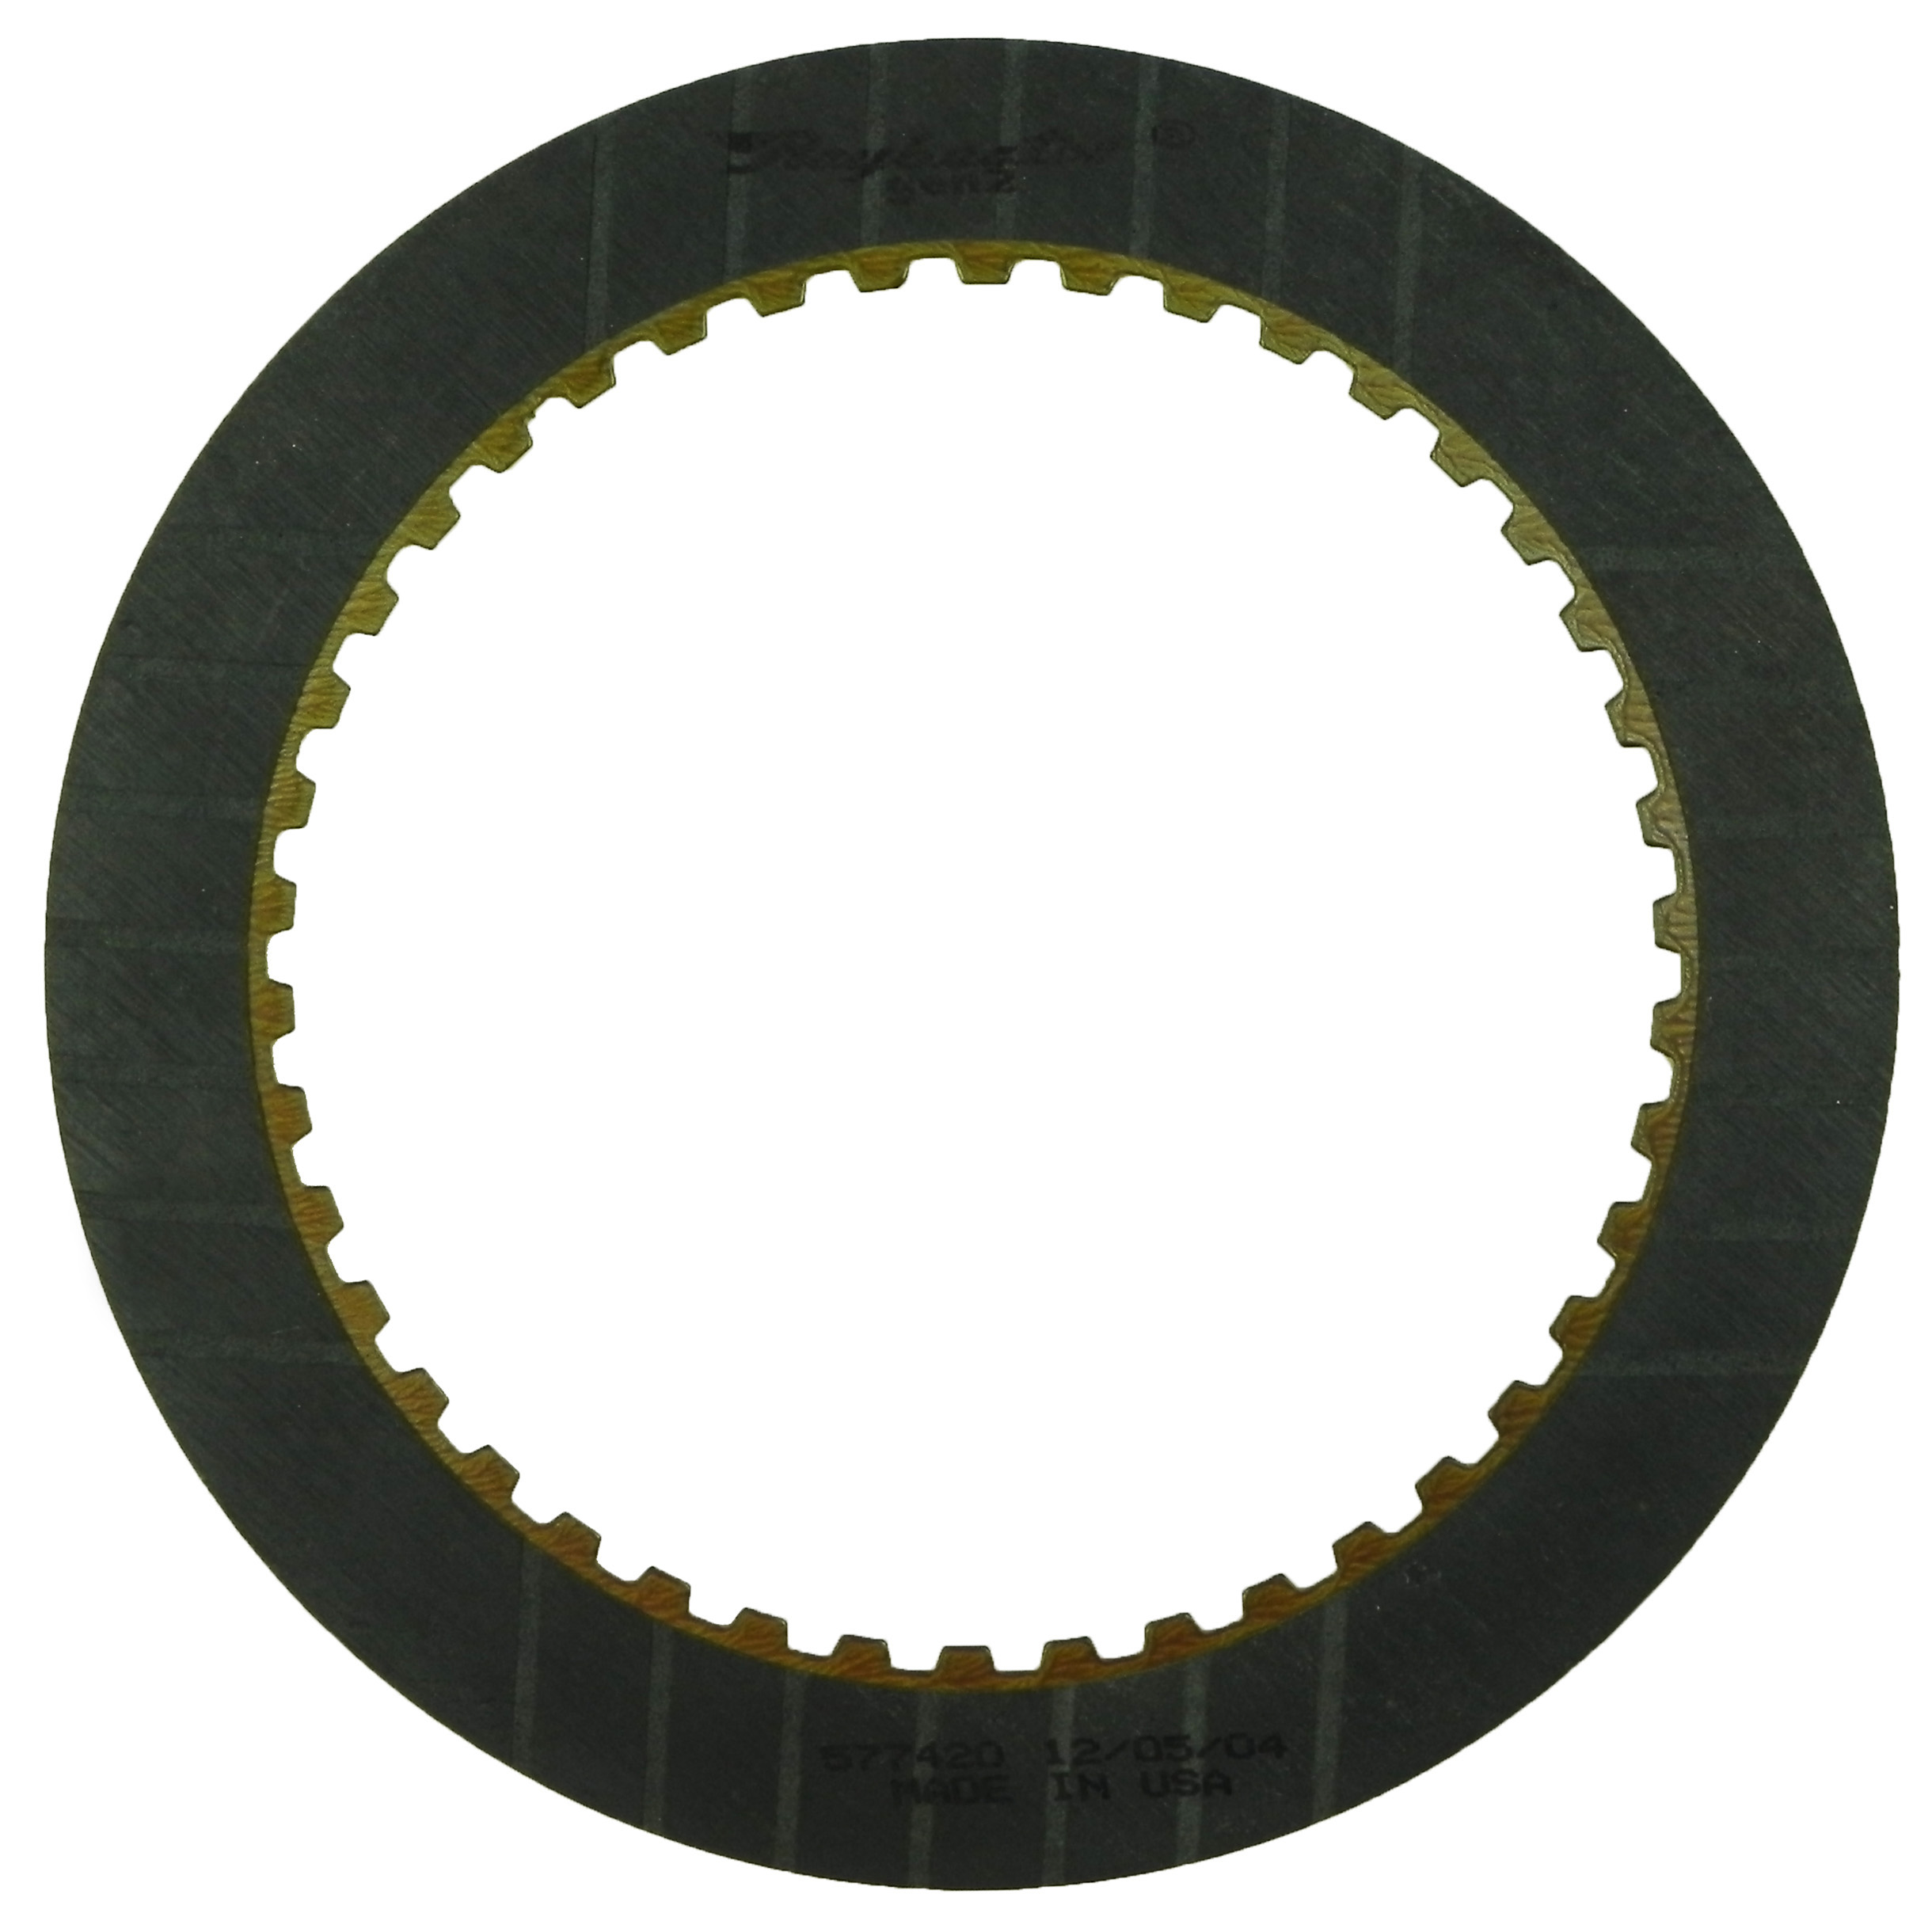 R577420 | 1964-1990 Friction Clutch Plate GEN 2, Blue Plate Special Forward, Direct, GEN 2, Race Product